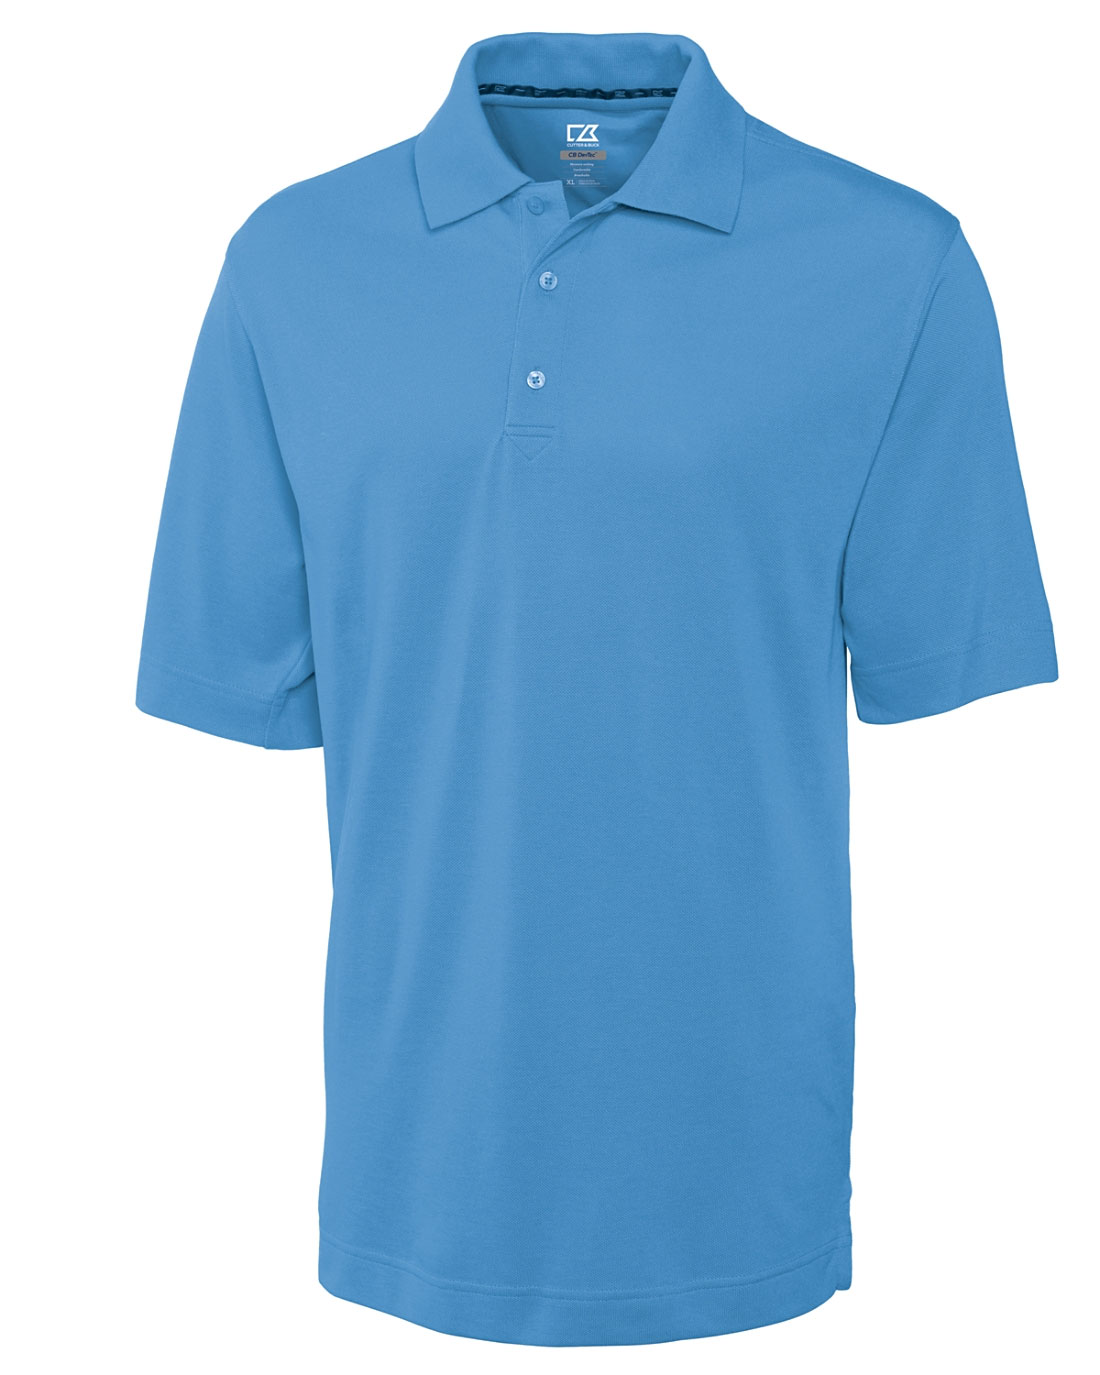 CB DryTec� Championship Polo for Men